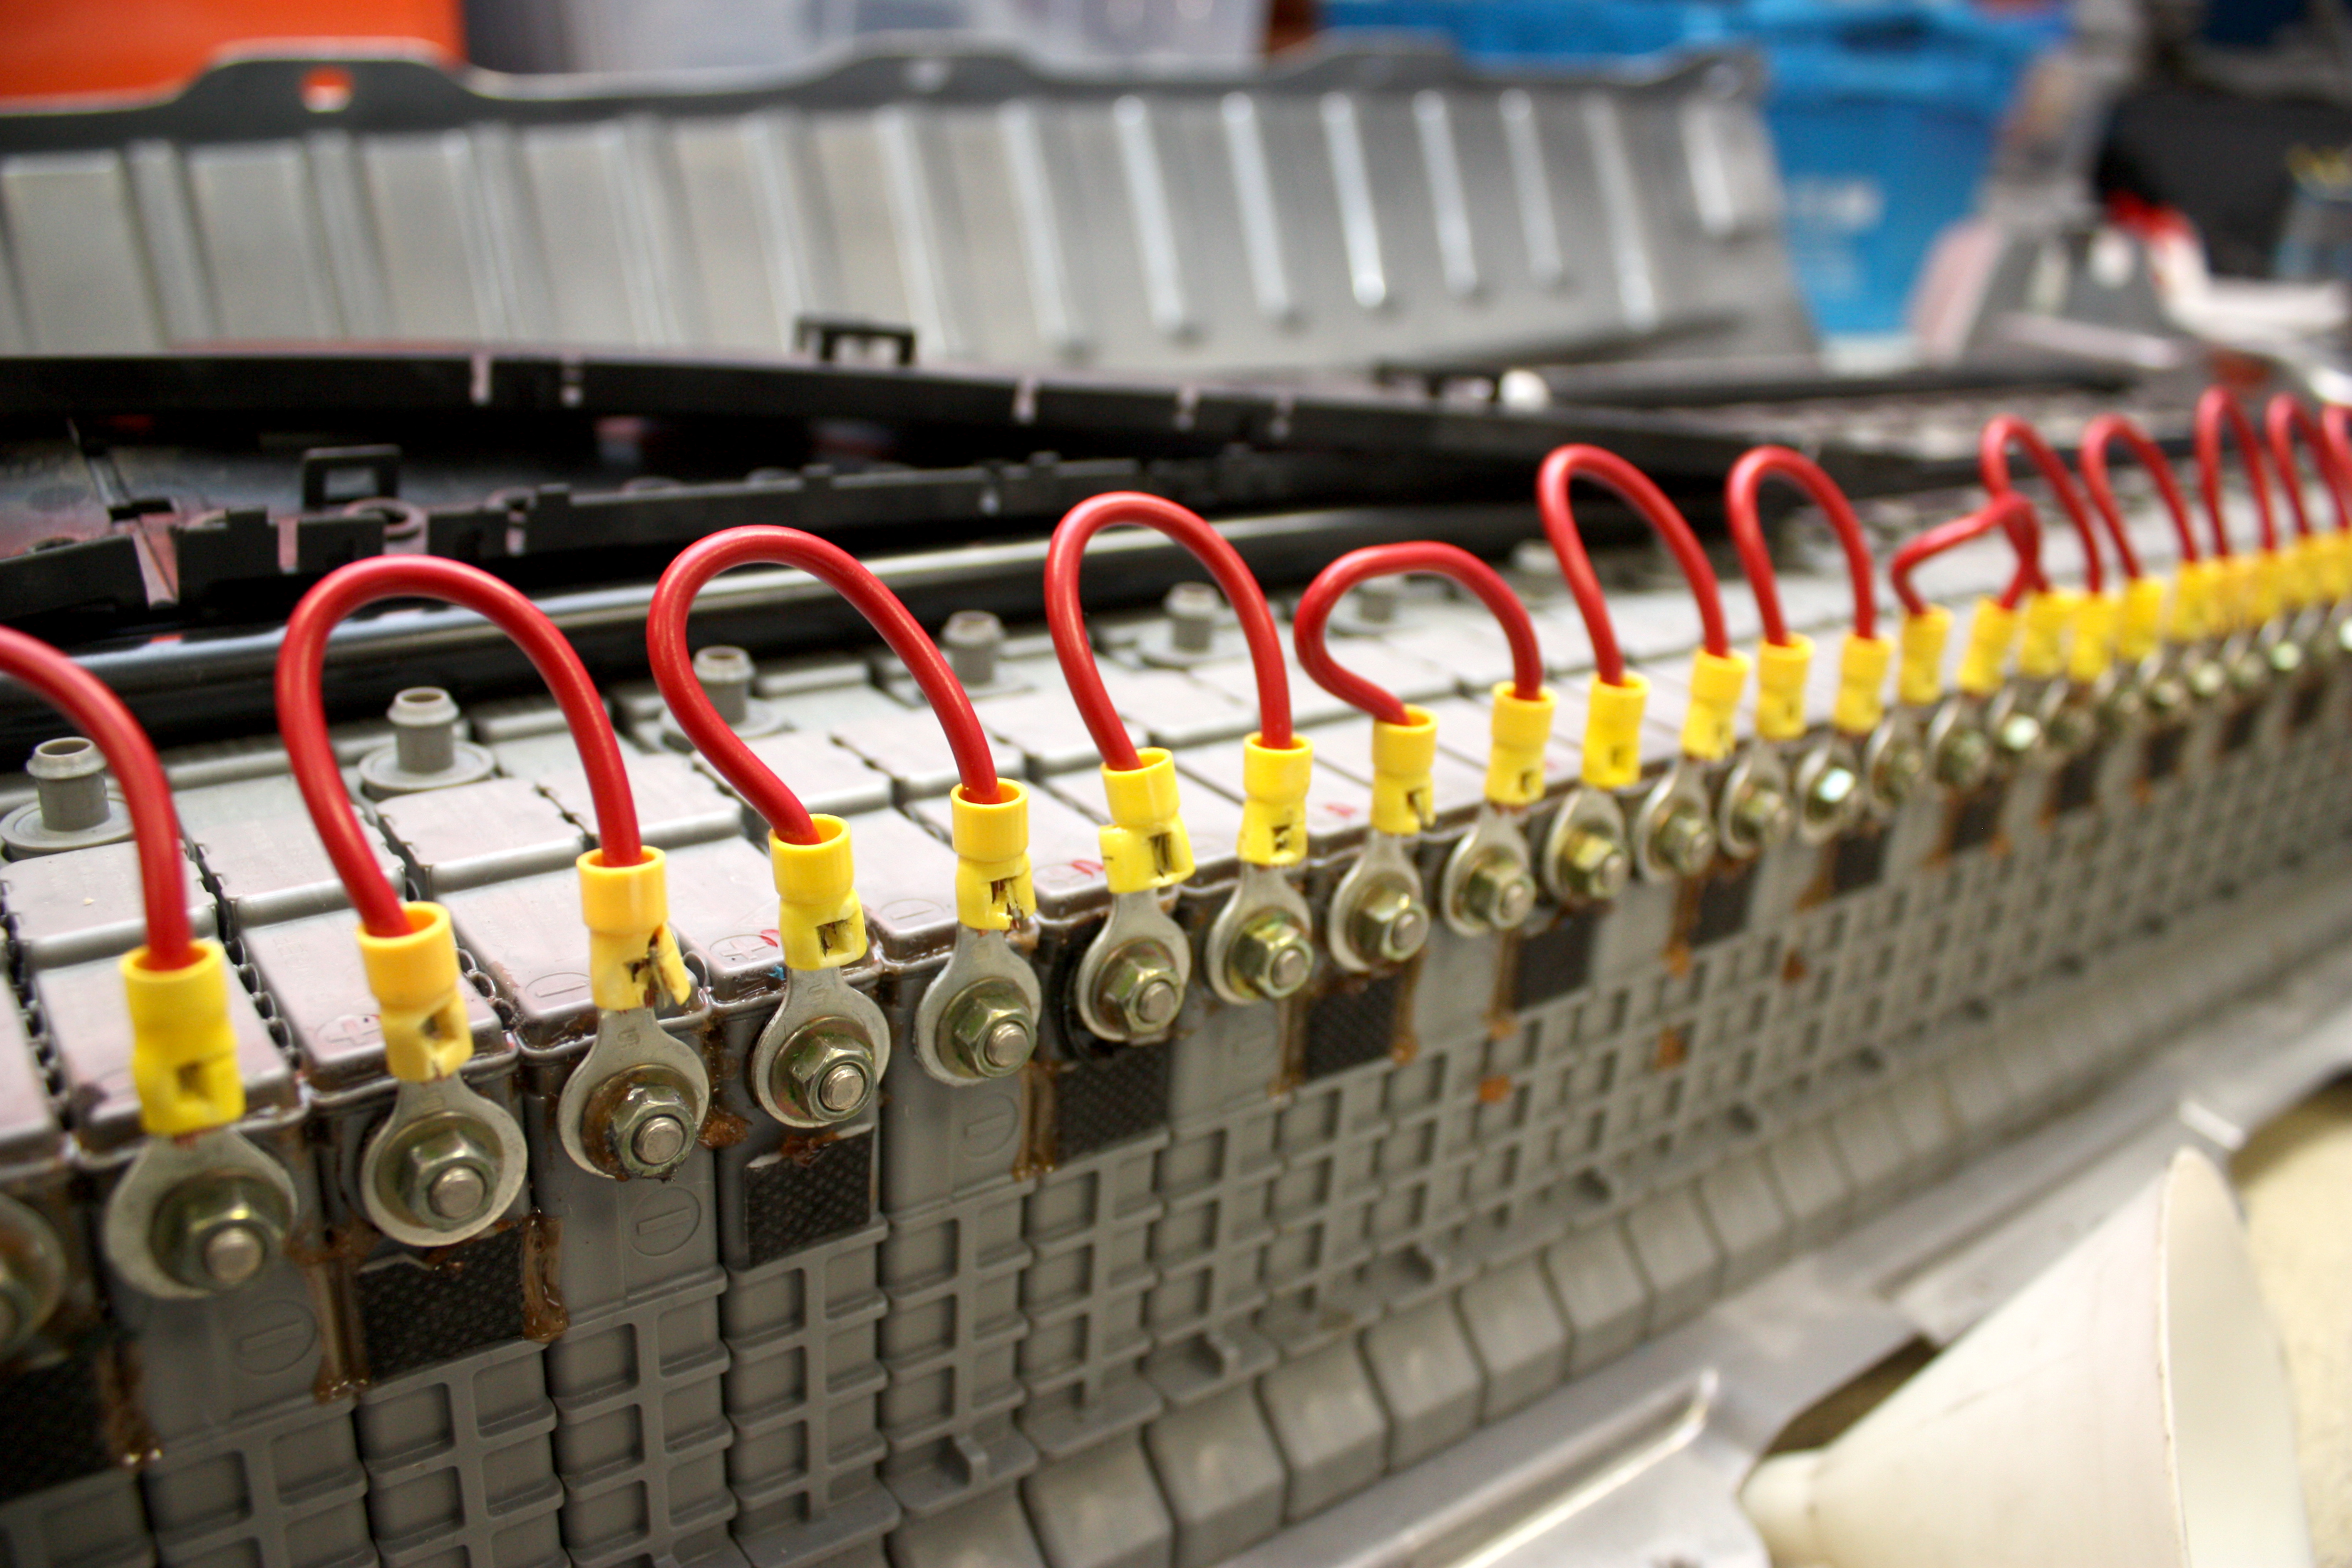 A Toyota Prius Battery Pack Contains Many Small Batteries That Each Must Be Worked On During